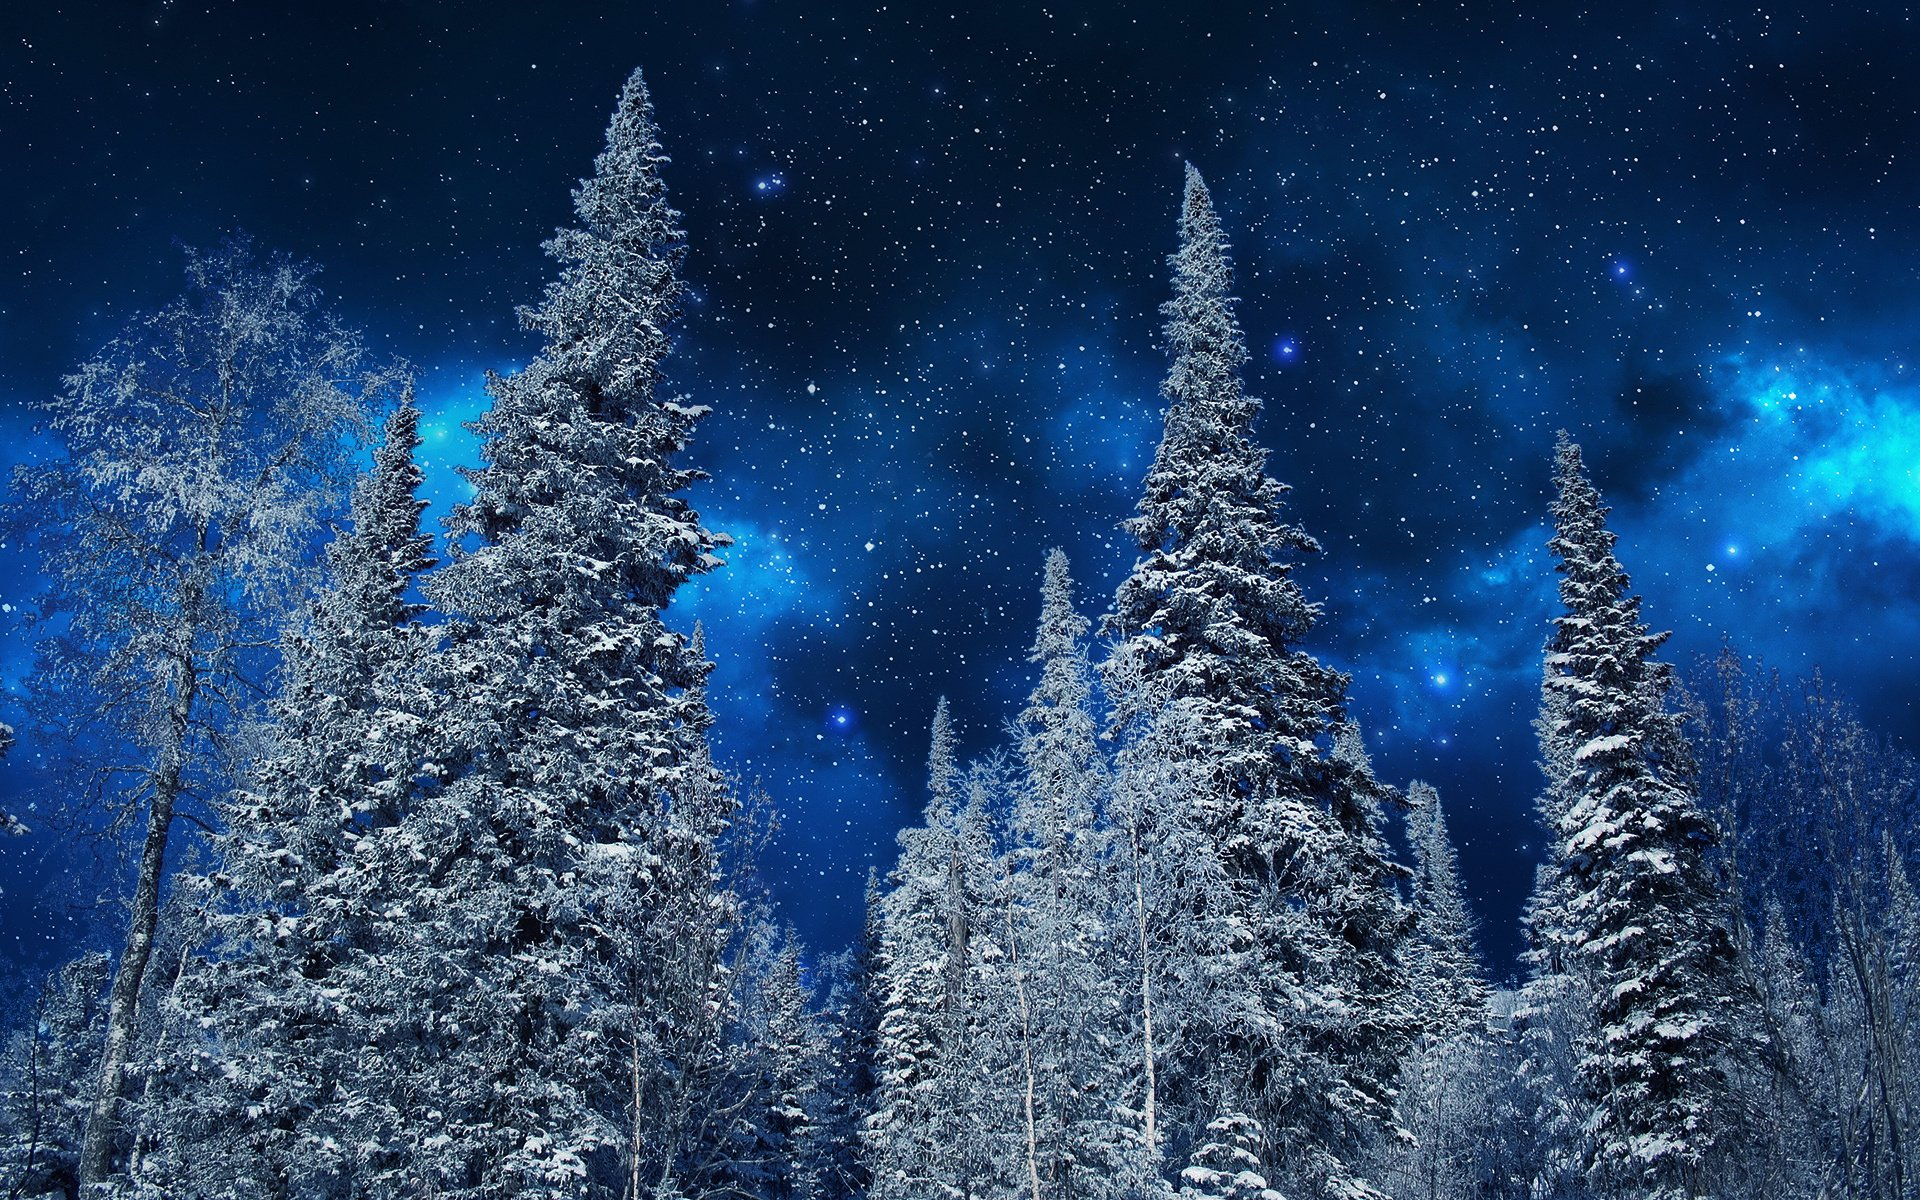 Starry Winter Night Full HD Wallpaper And Background